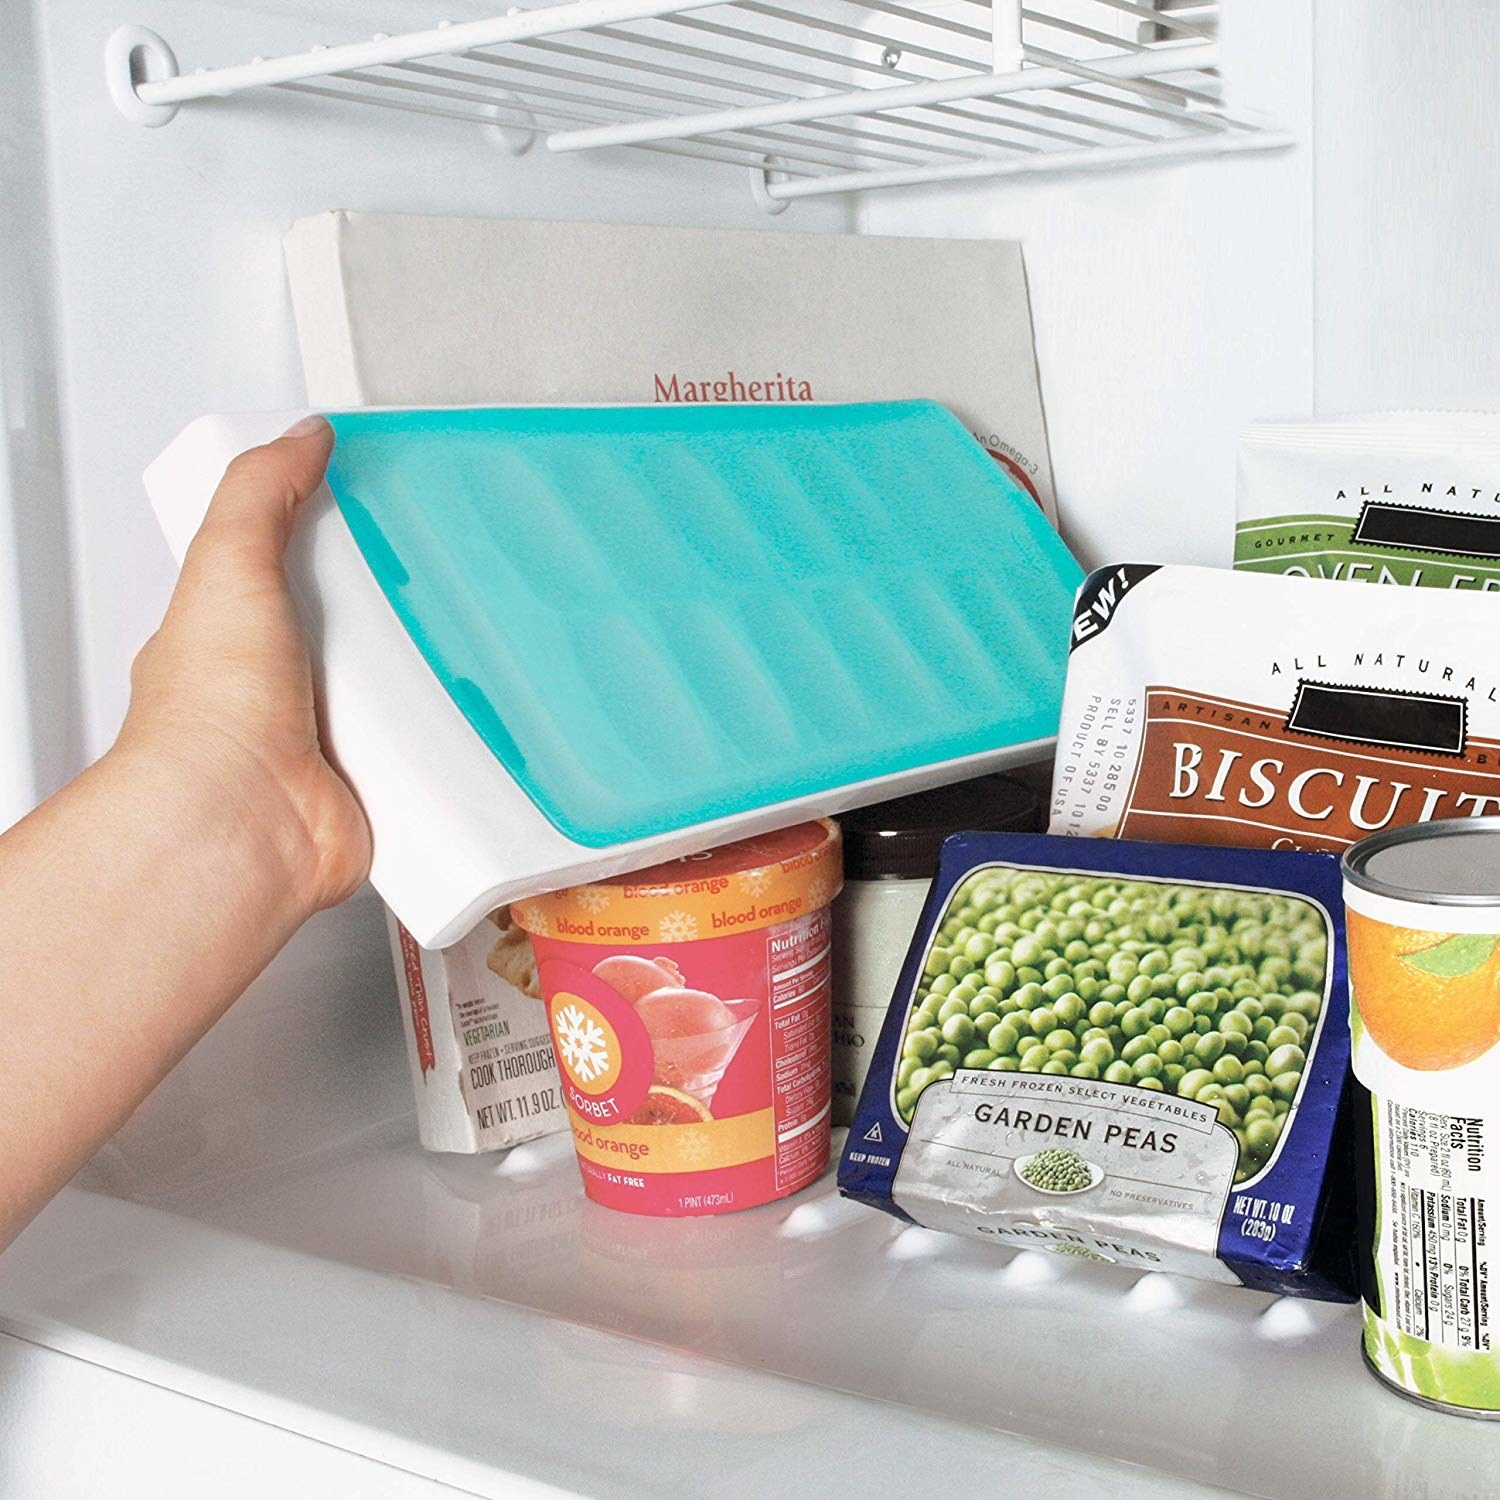 A hand placing an ice cube tray with a lid into a crowded freezer